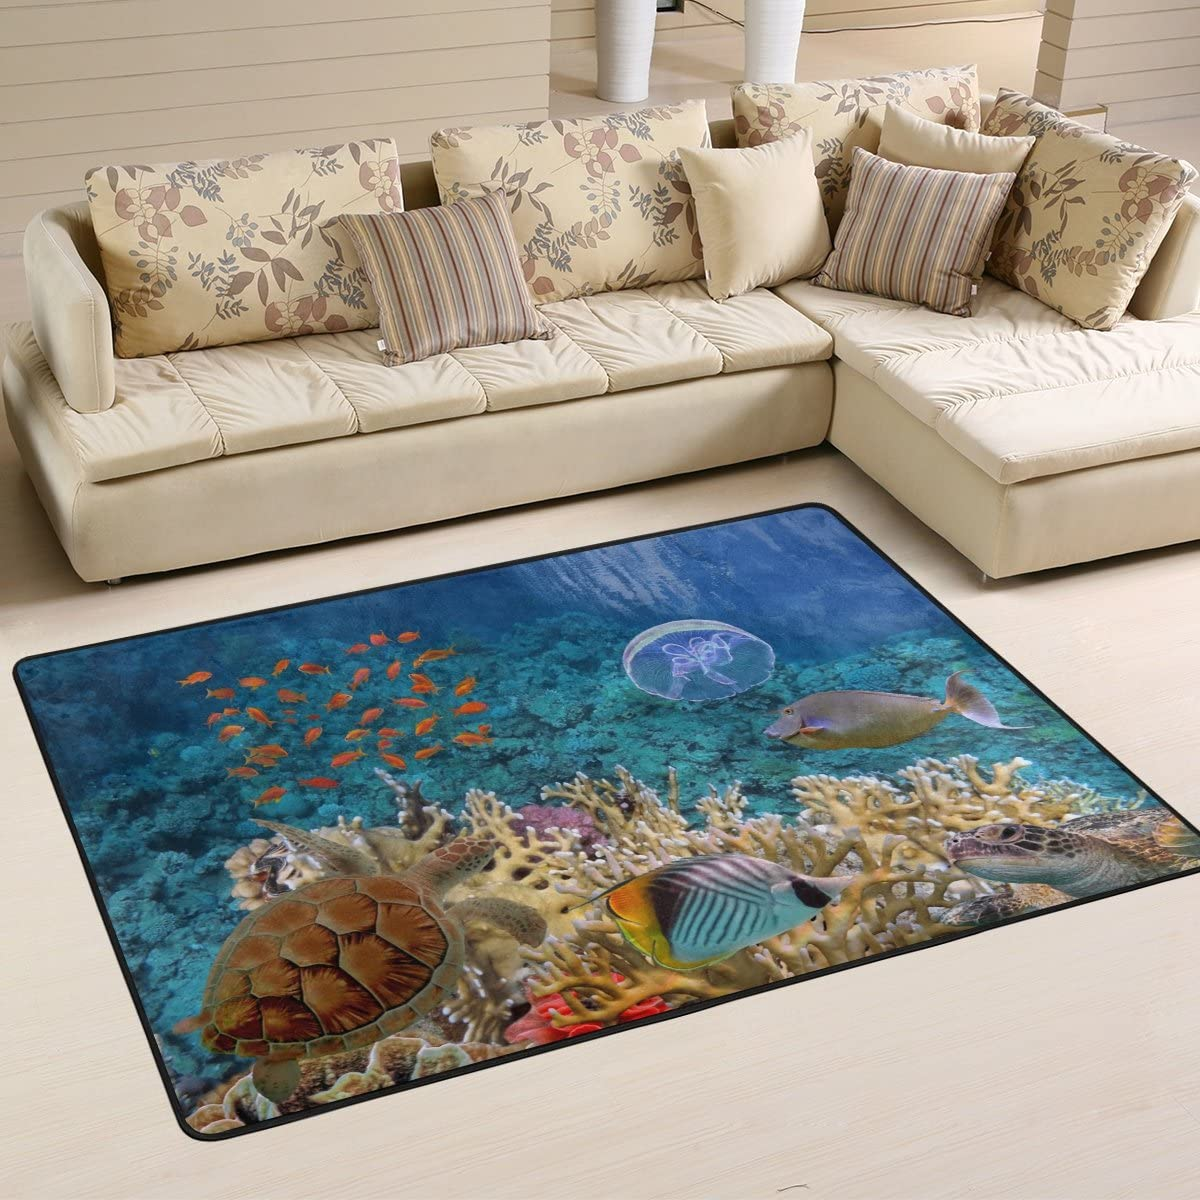 Naanle Ocean Animal Area Rug 2 x3 , Tropical Beach Sea Turle Polyester Area Rug Mat for Living Dining Dorm Room Bedroom Home Decorative